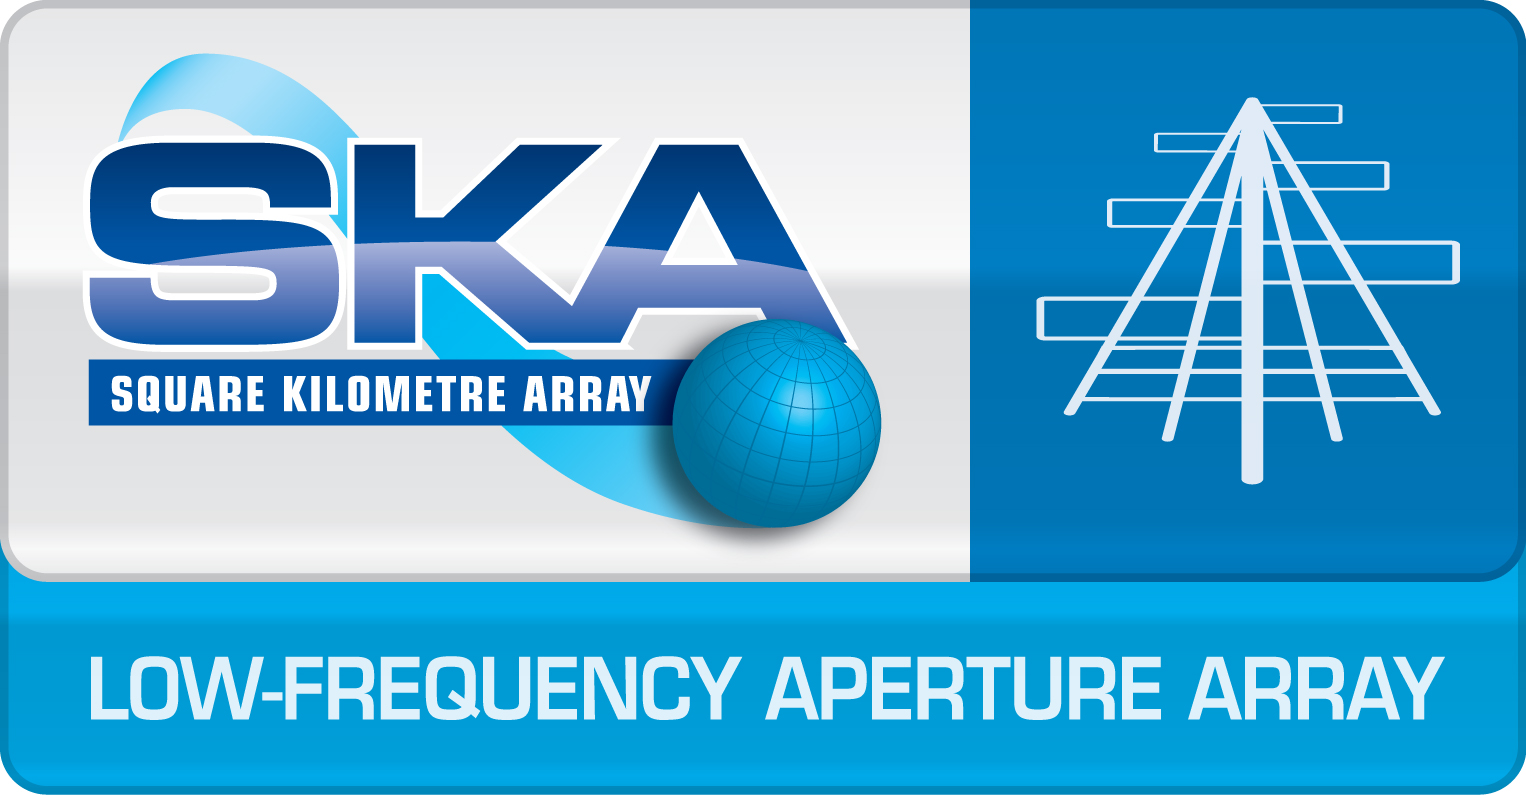 LowFrequencyApertureArray_blue